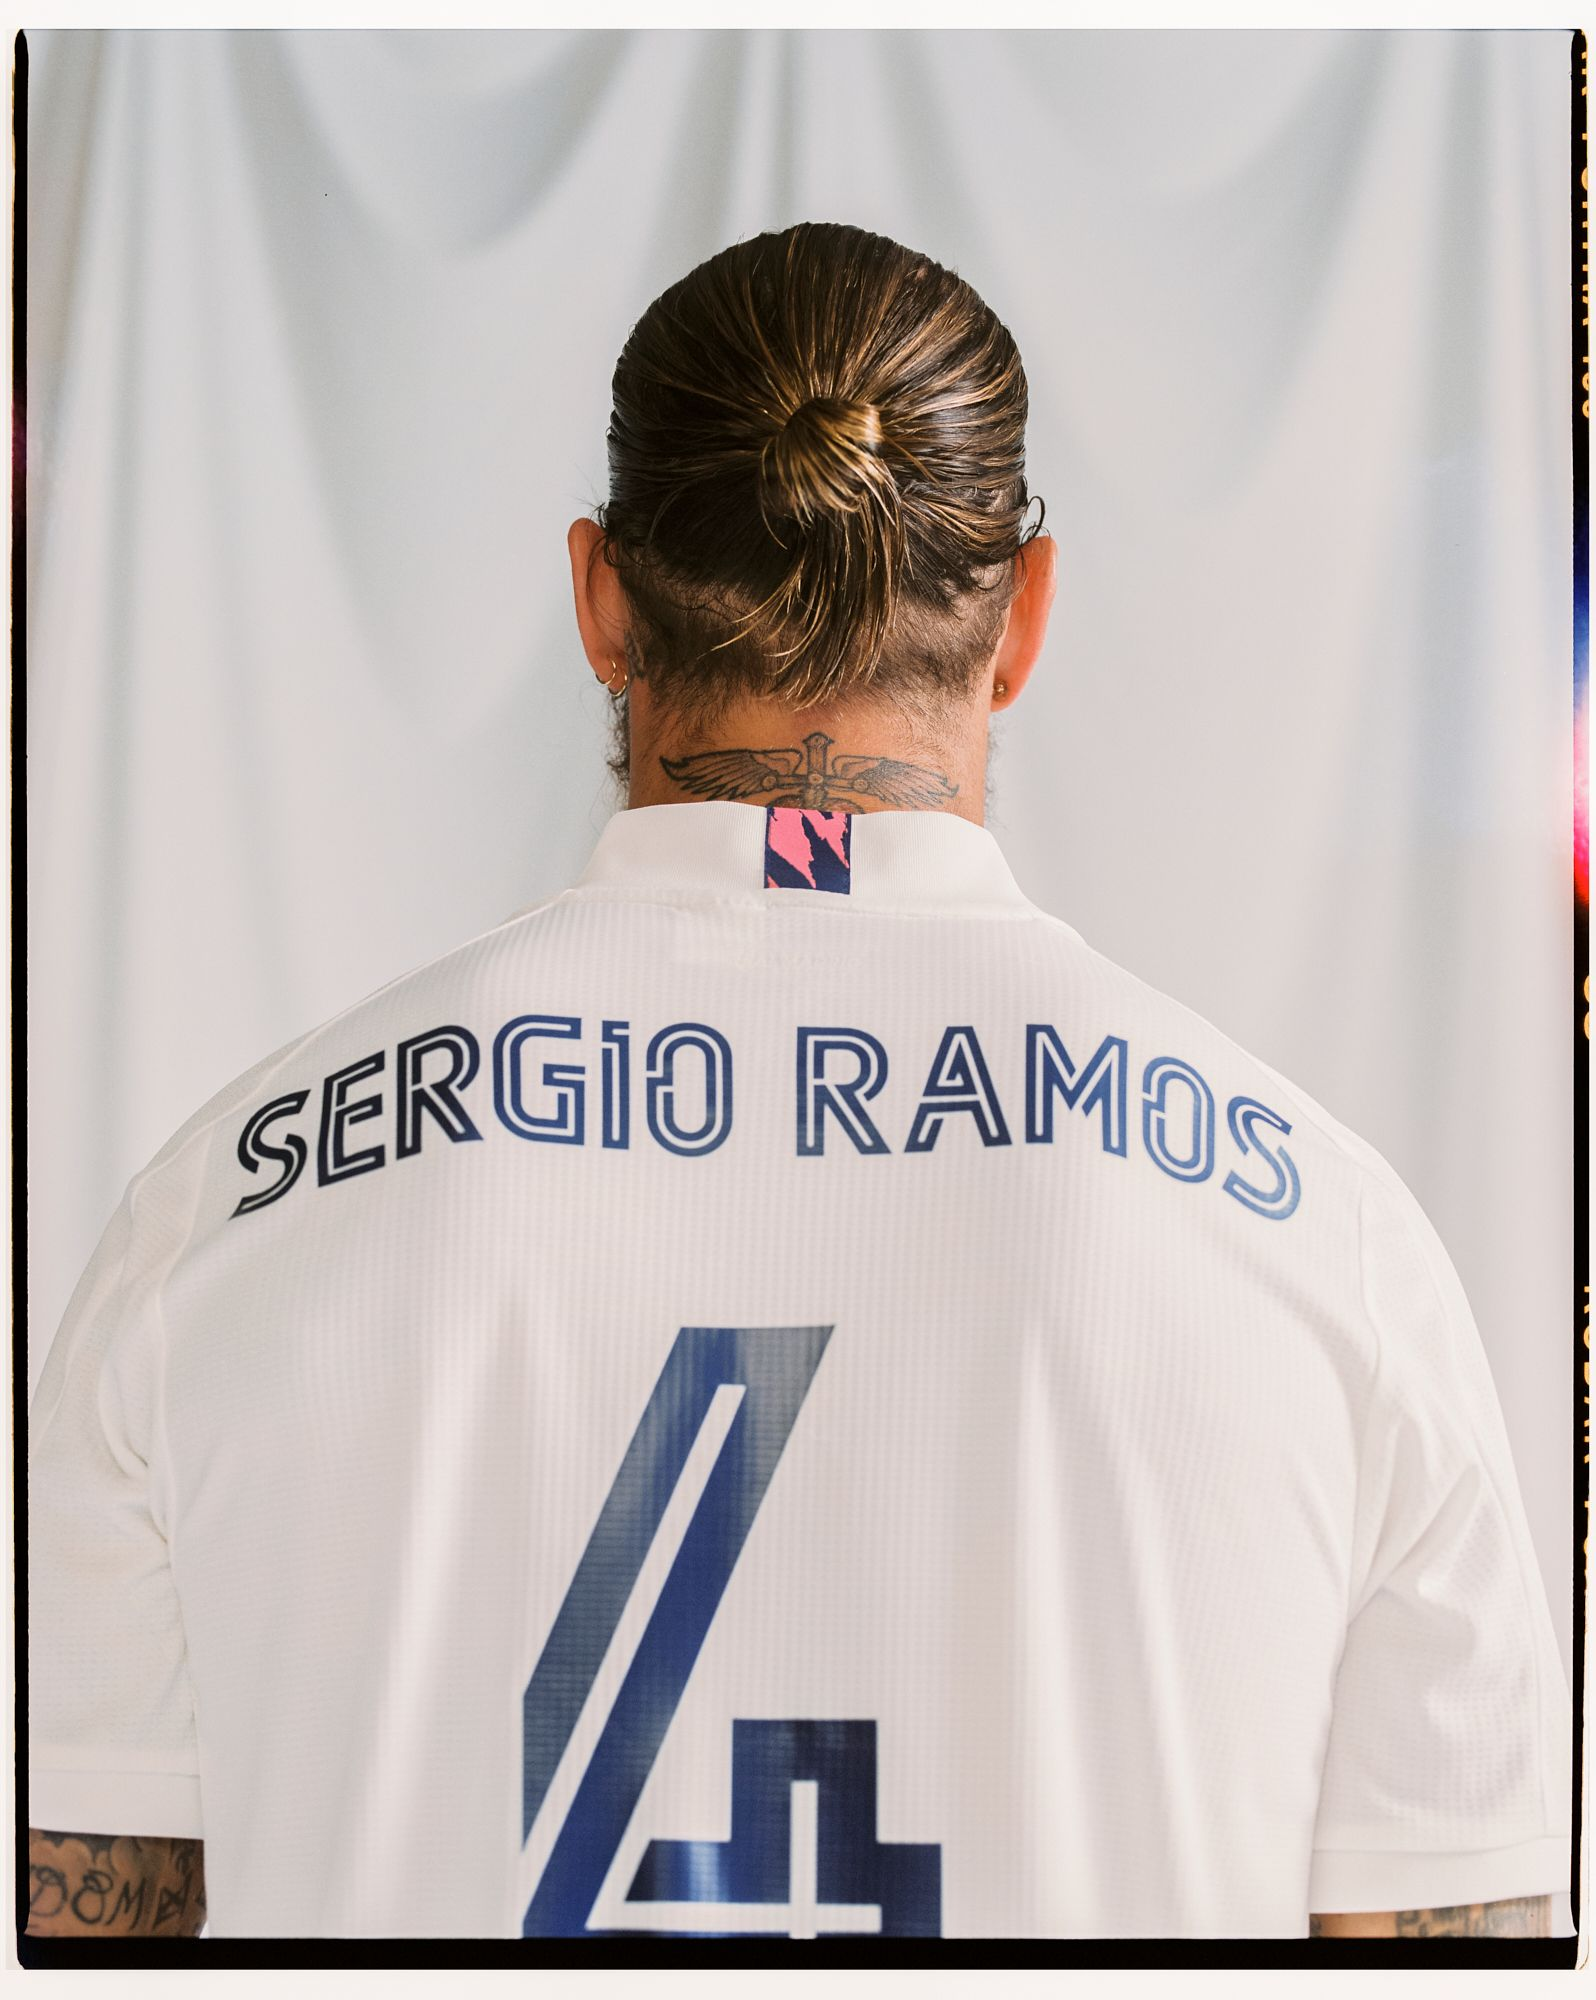 Real Madrid SS20/21 Home Kit